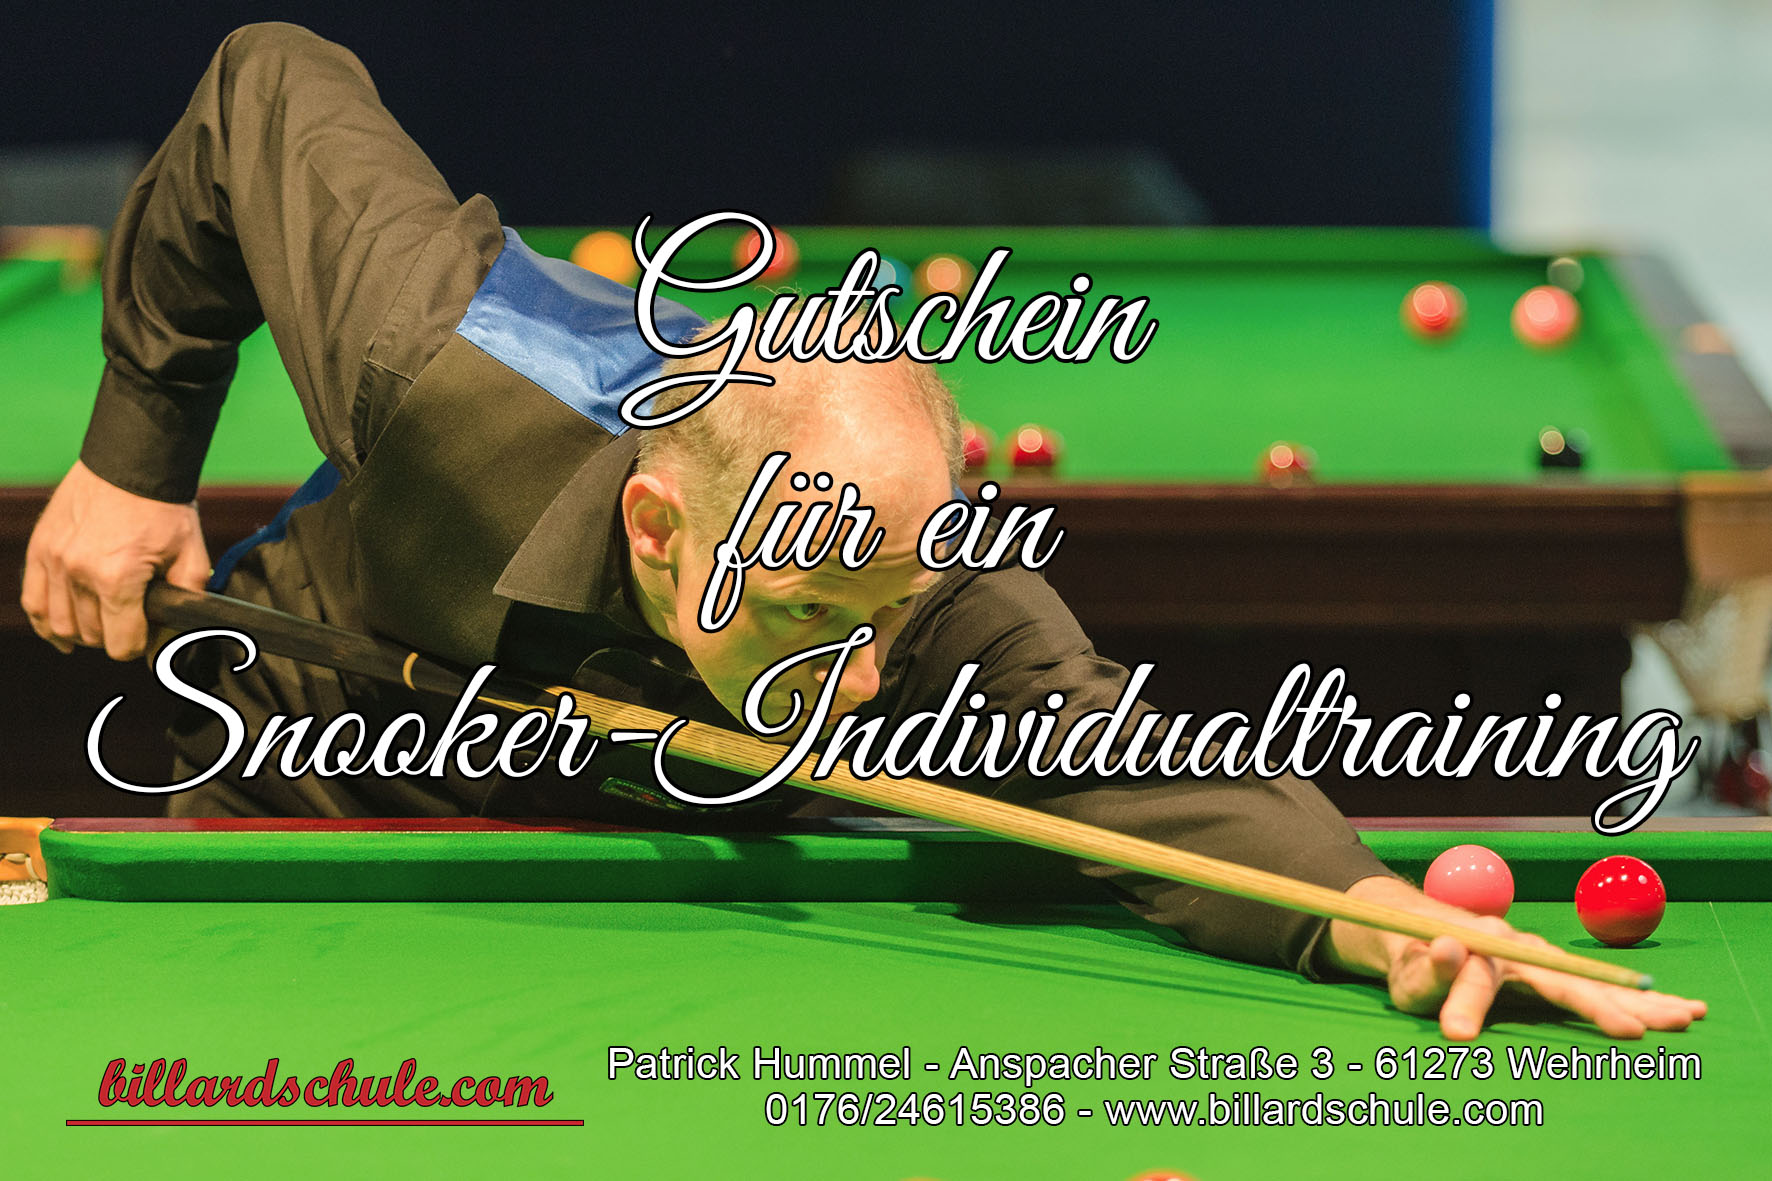 Gutschein Snooker Individualtraining